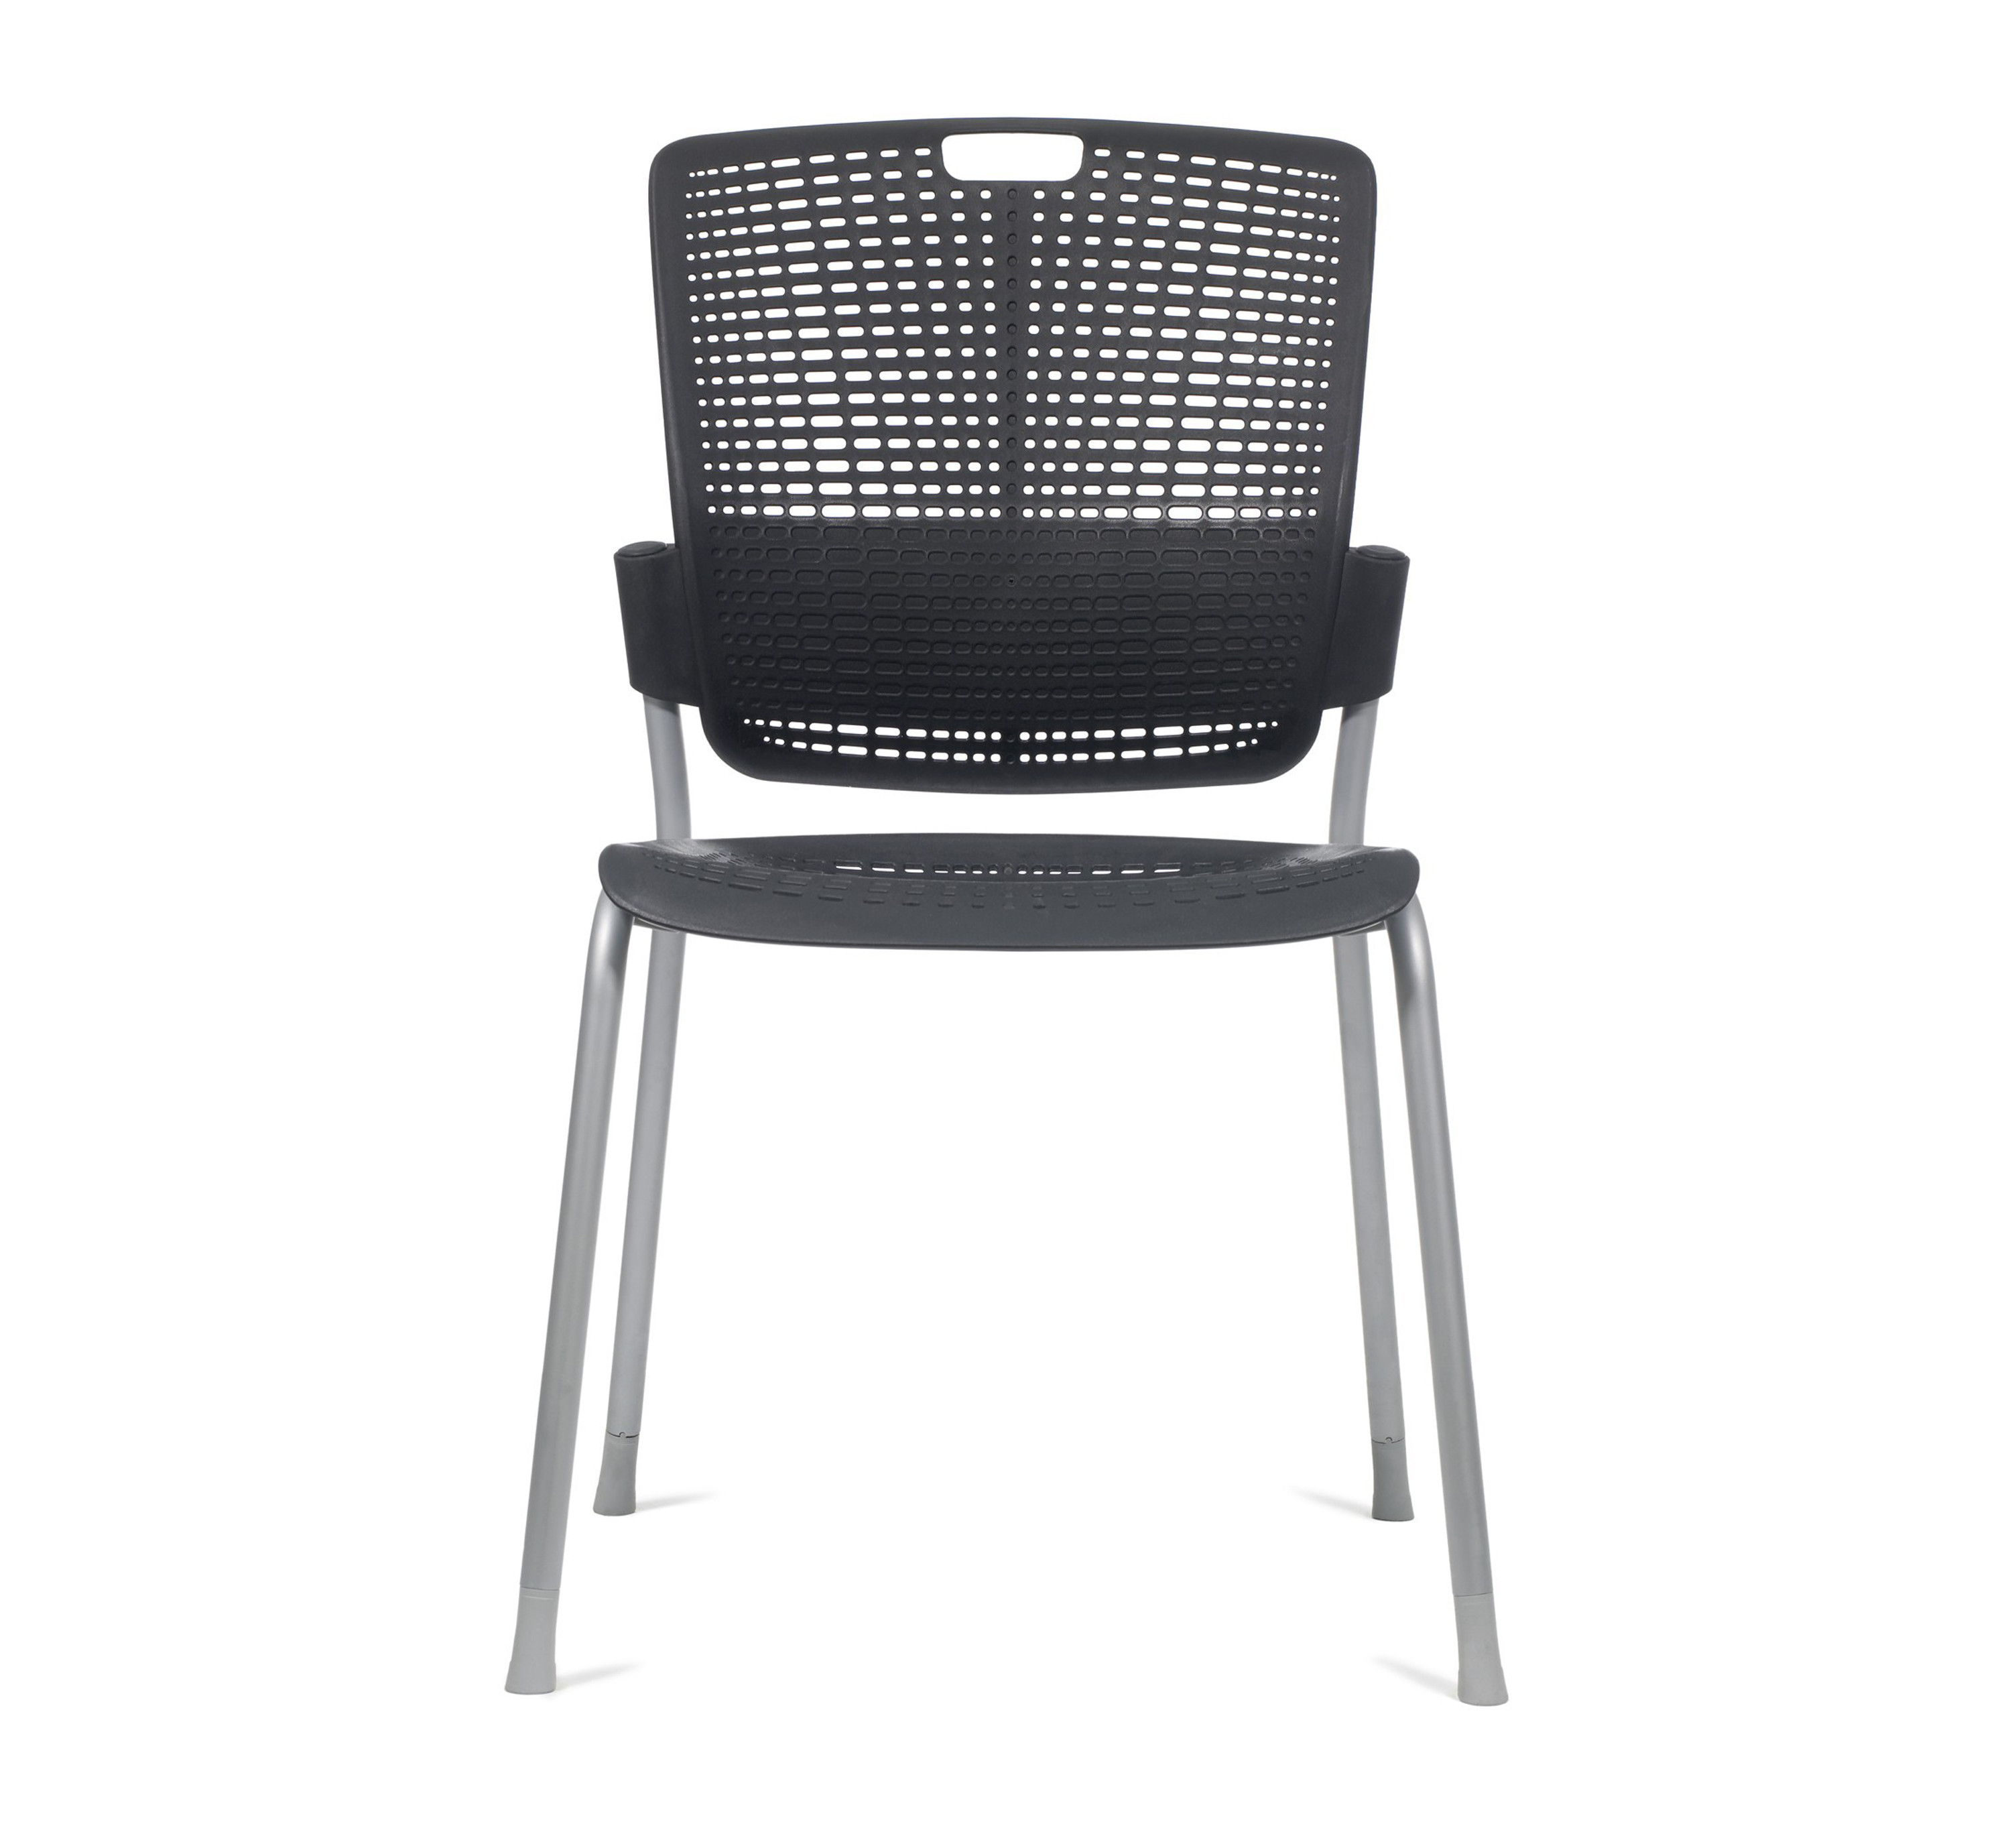 4 Legged Chair by Humanscale